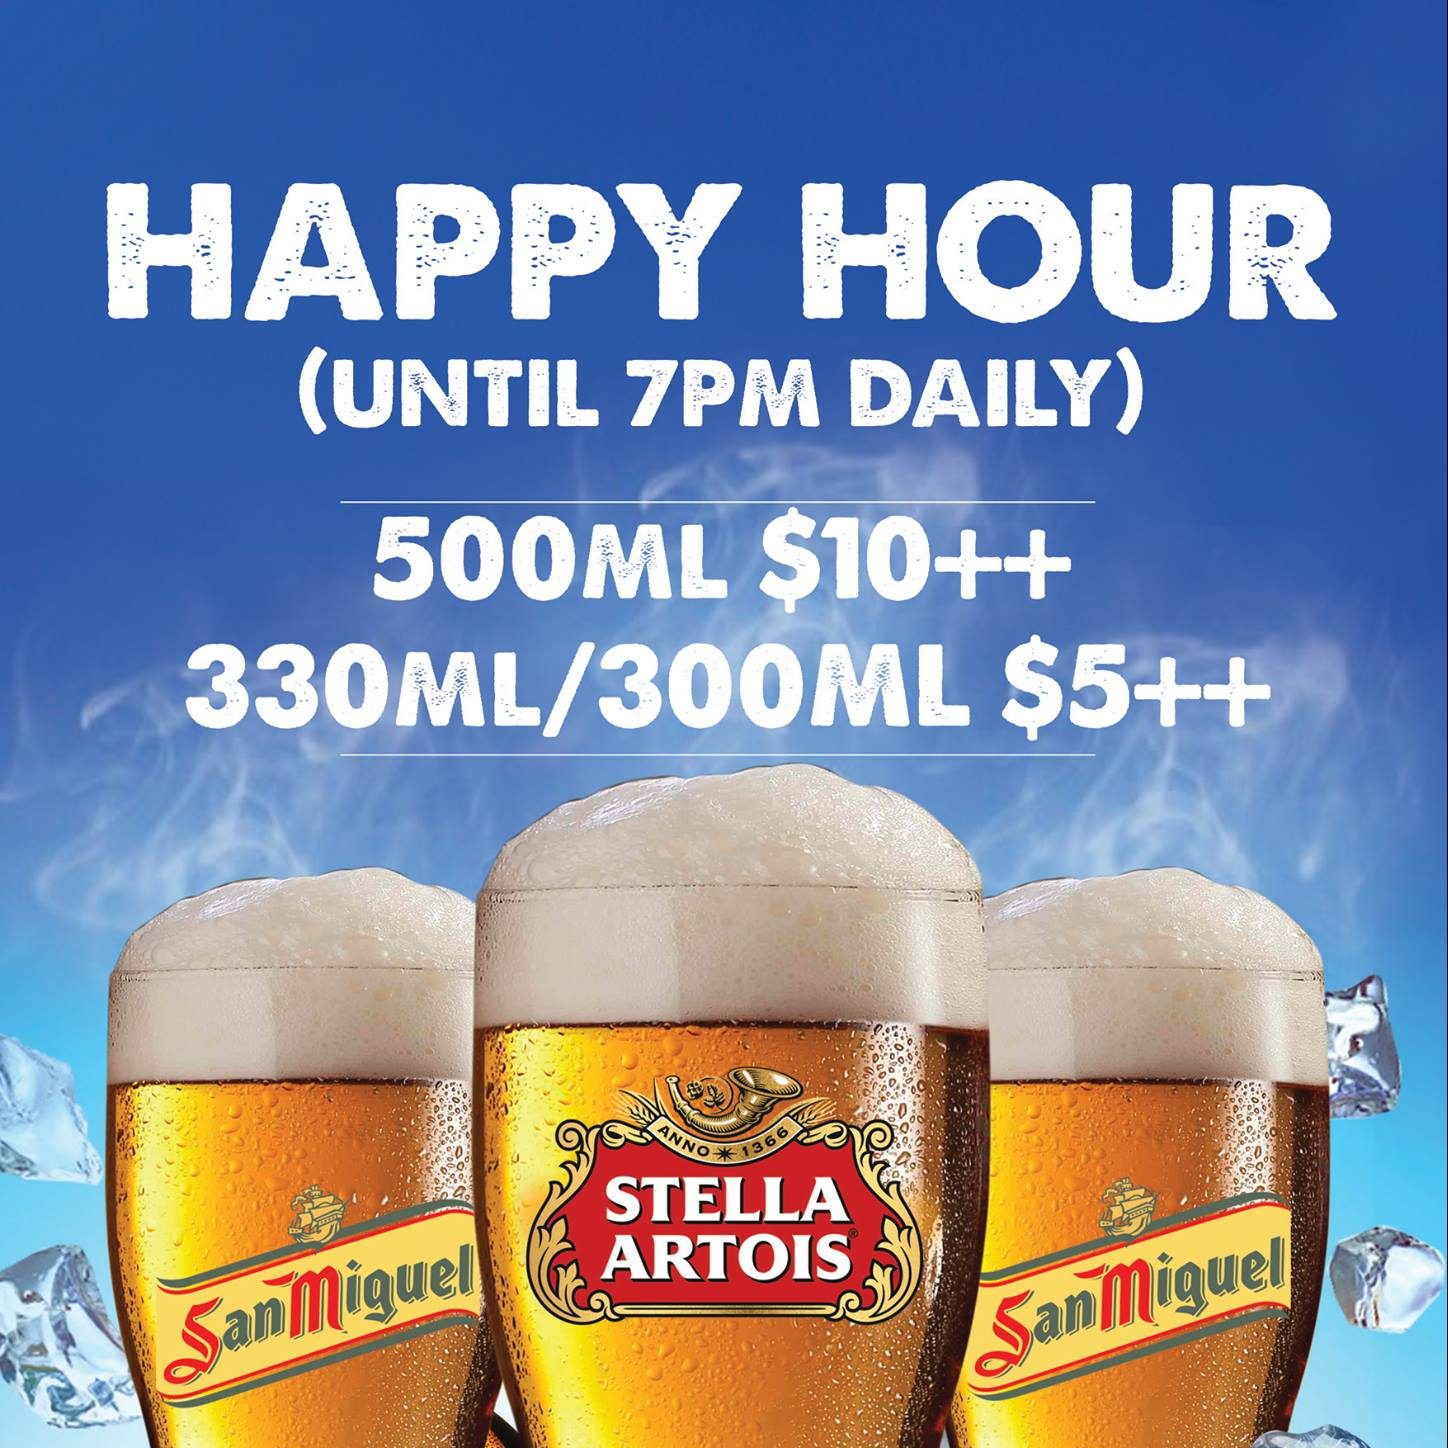 Chicken Up SG Happy Hour until 7pm Daily - Why Not Deals & Promotions